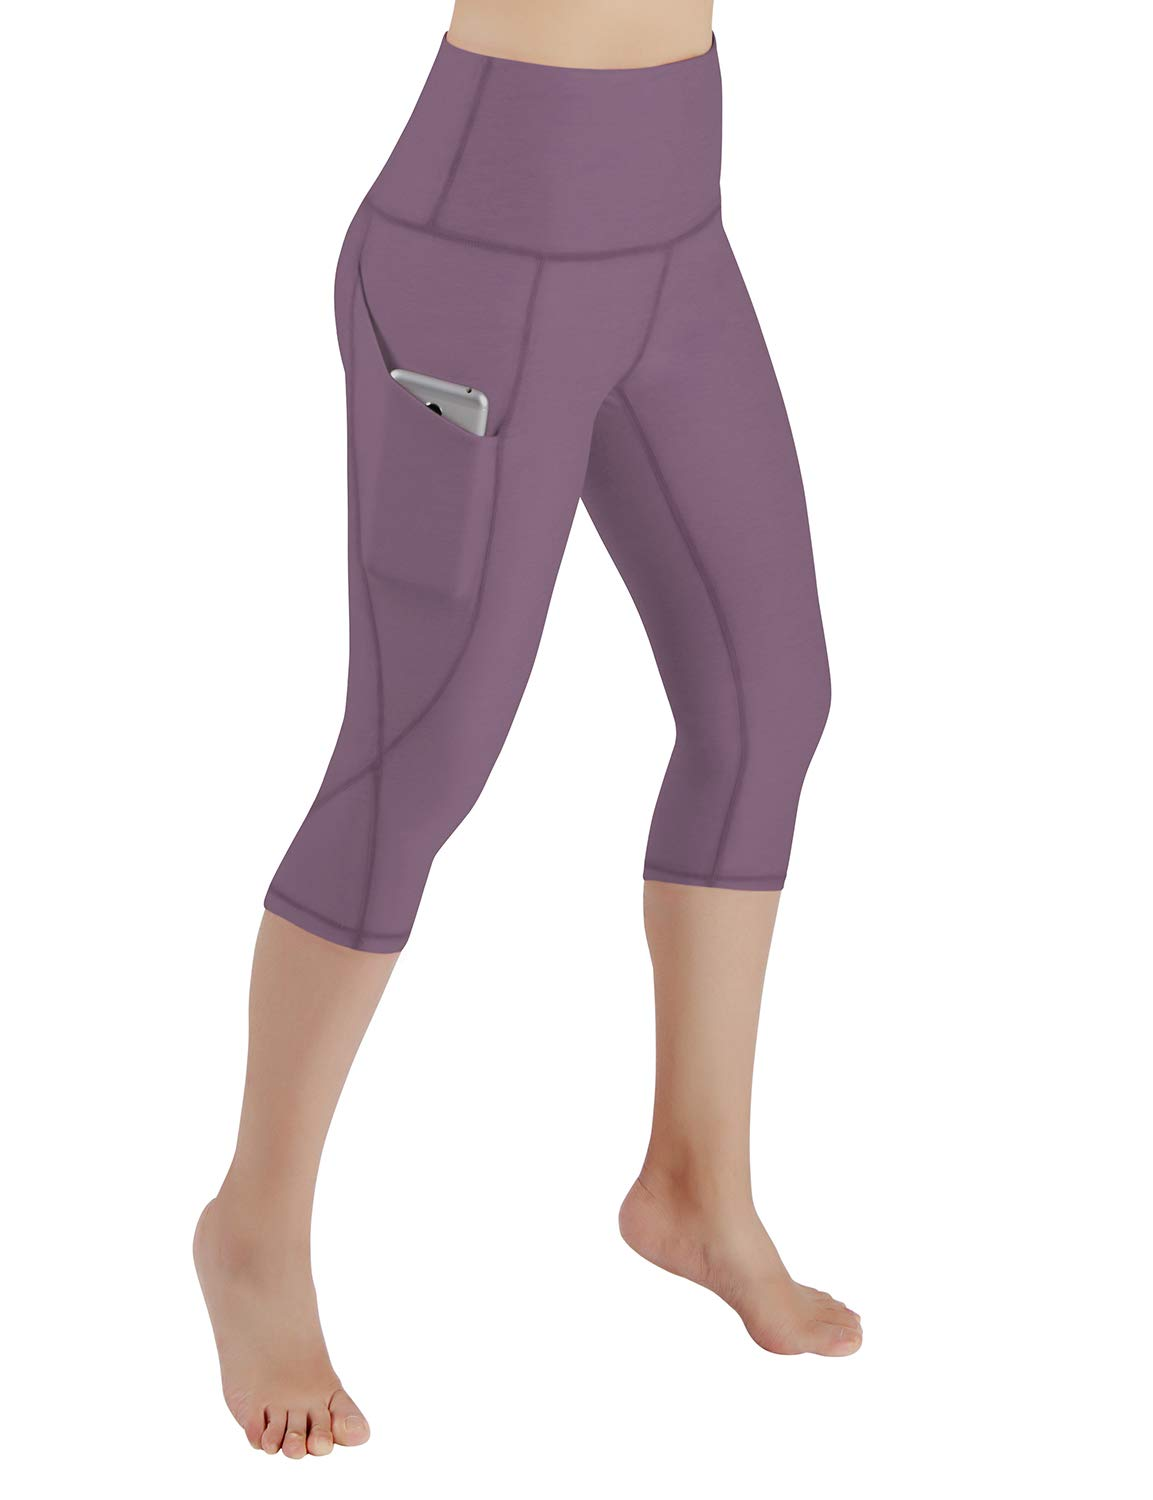 ODODOS Women's High Waist Yoga Capris with Pockets,Tummy Control,Workout Capris Running 4 Way Stretch Yoga Leggings with Pockets,Lavender,XX-Large by ODODOS